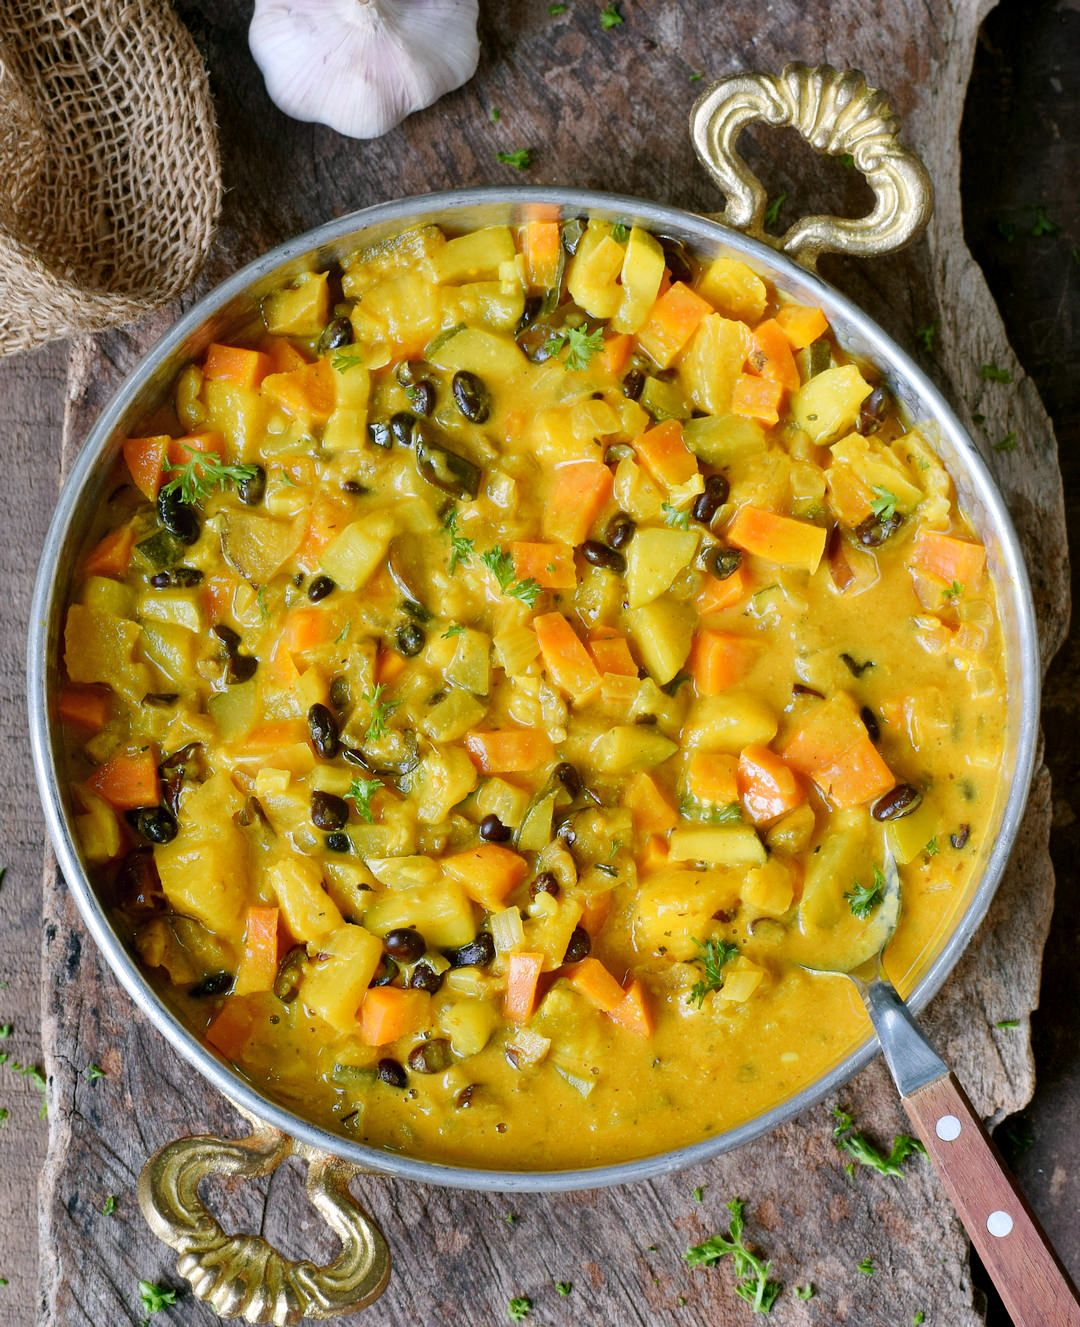 Vegetable Curry Recipe With Coconut Milk Pineapple And Chickpeas Or Beans This Healthy Comfor Vegetable Curry Recipes Easy Vegetable Curry Vegetable Curry